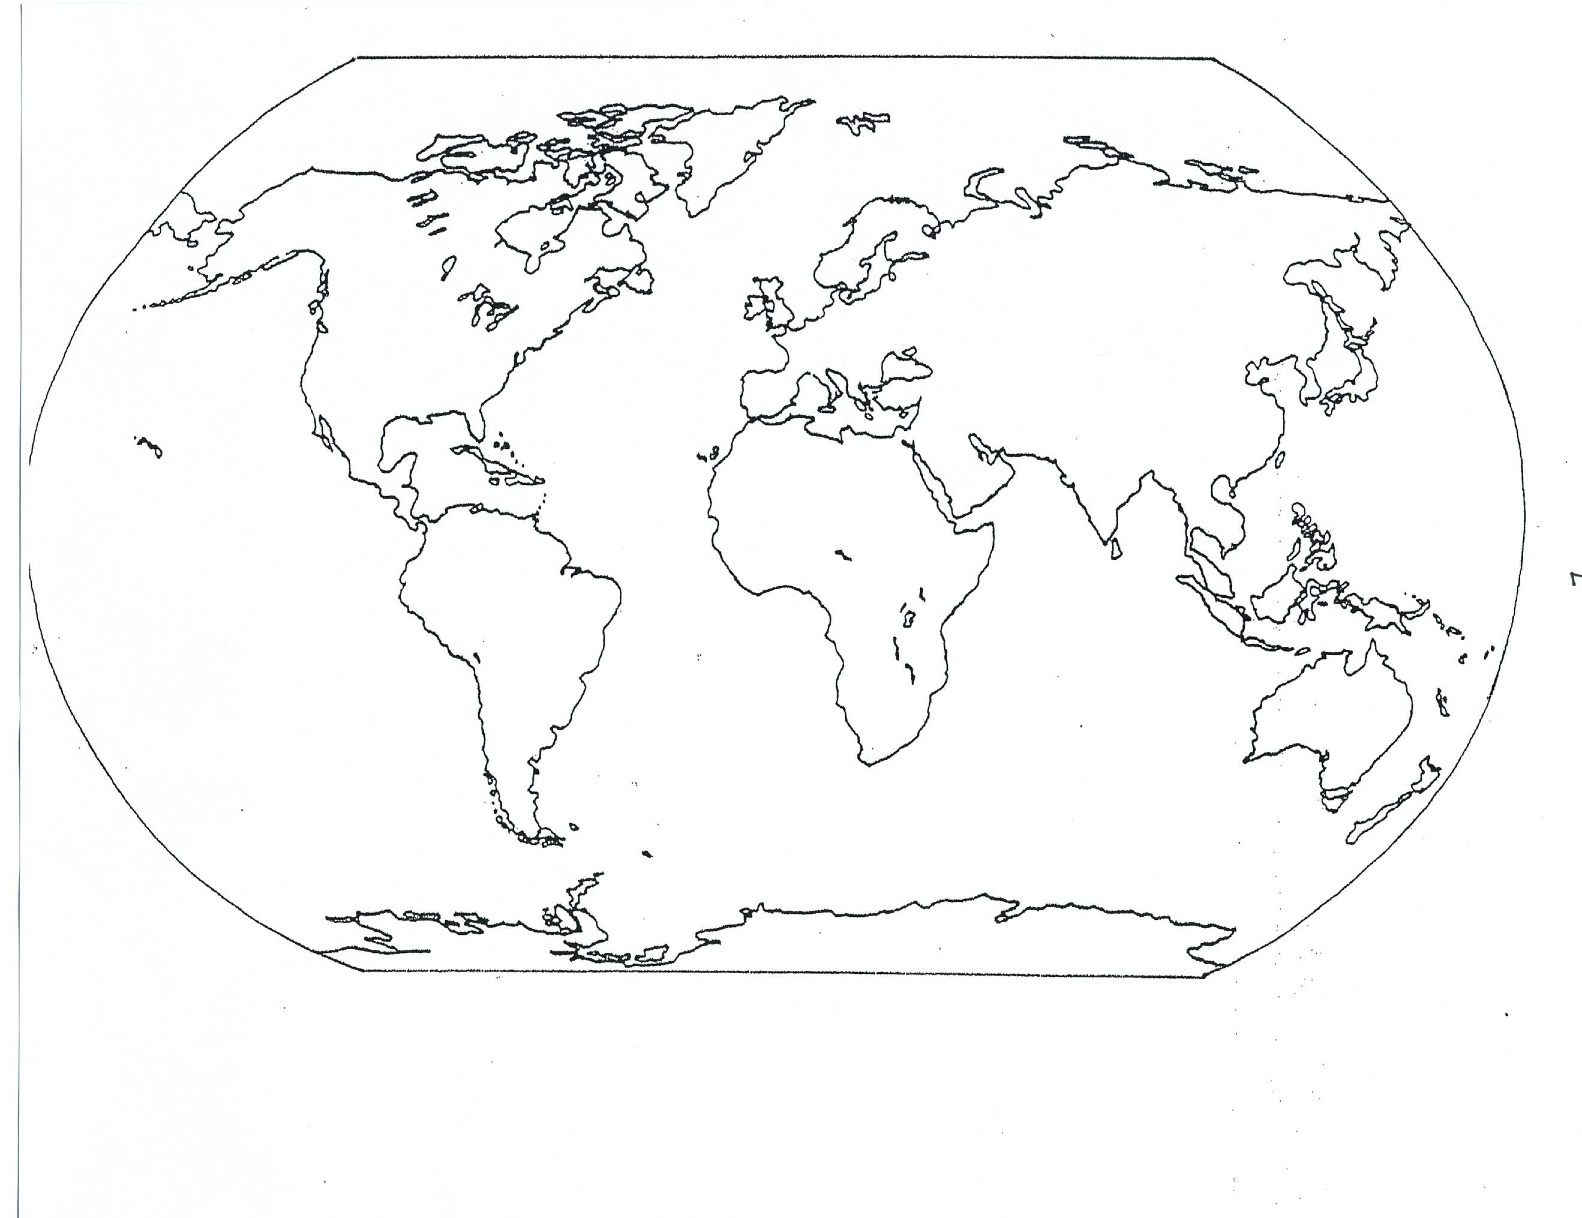 Continents And Oceans - World map continents and oceans black and white